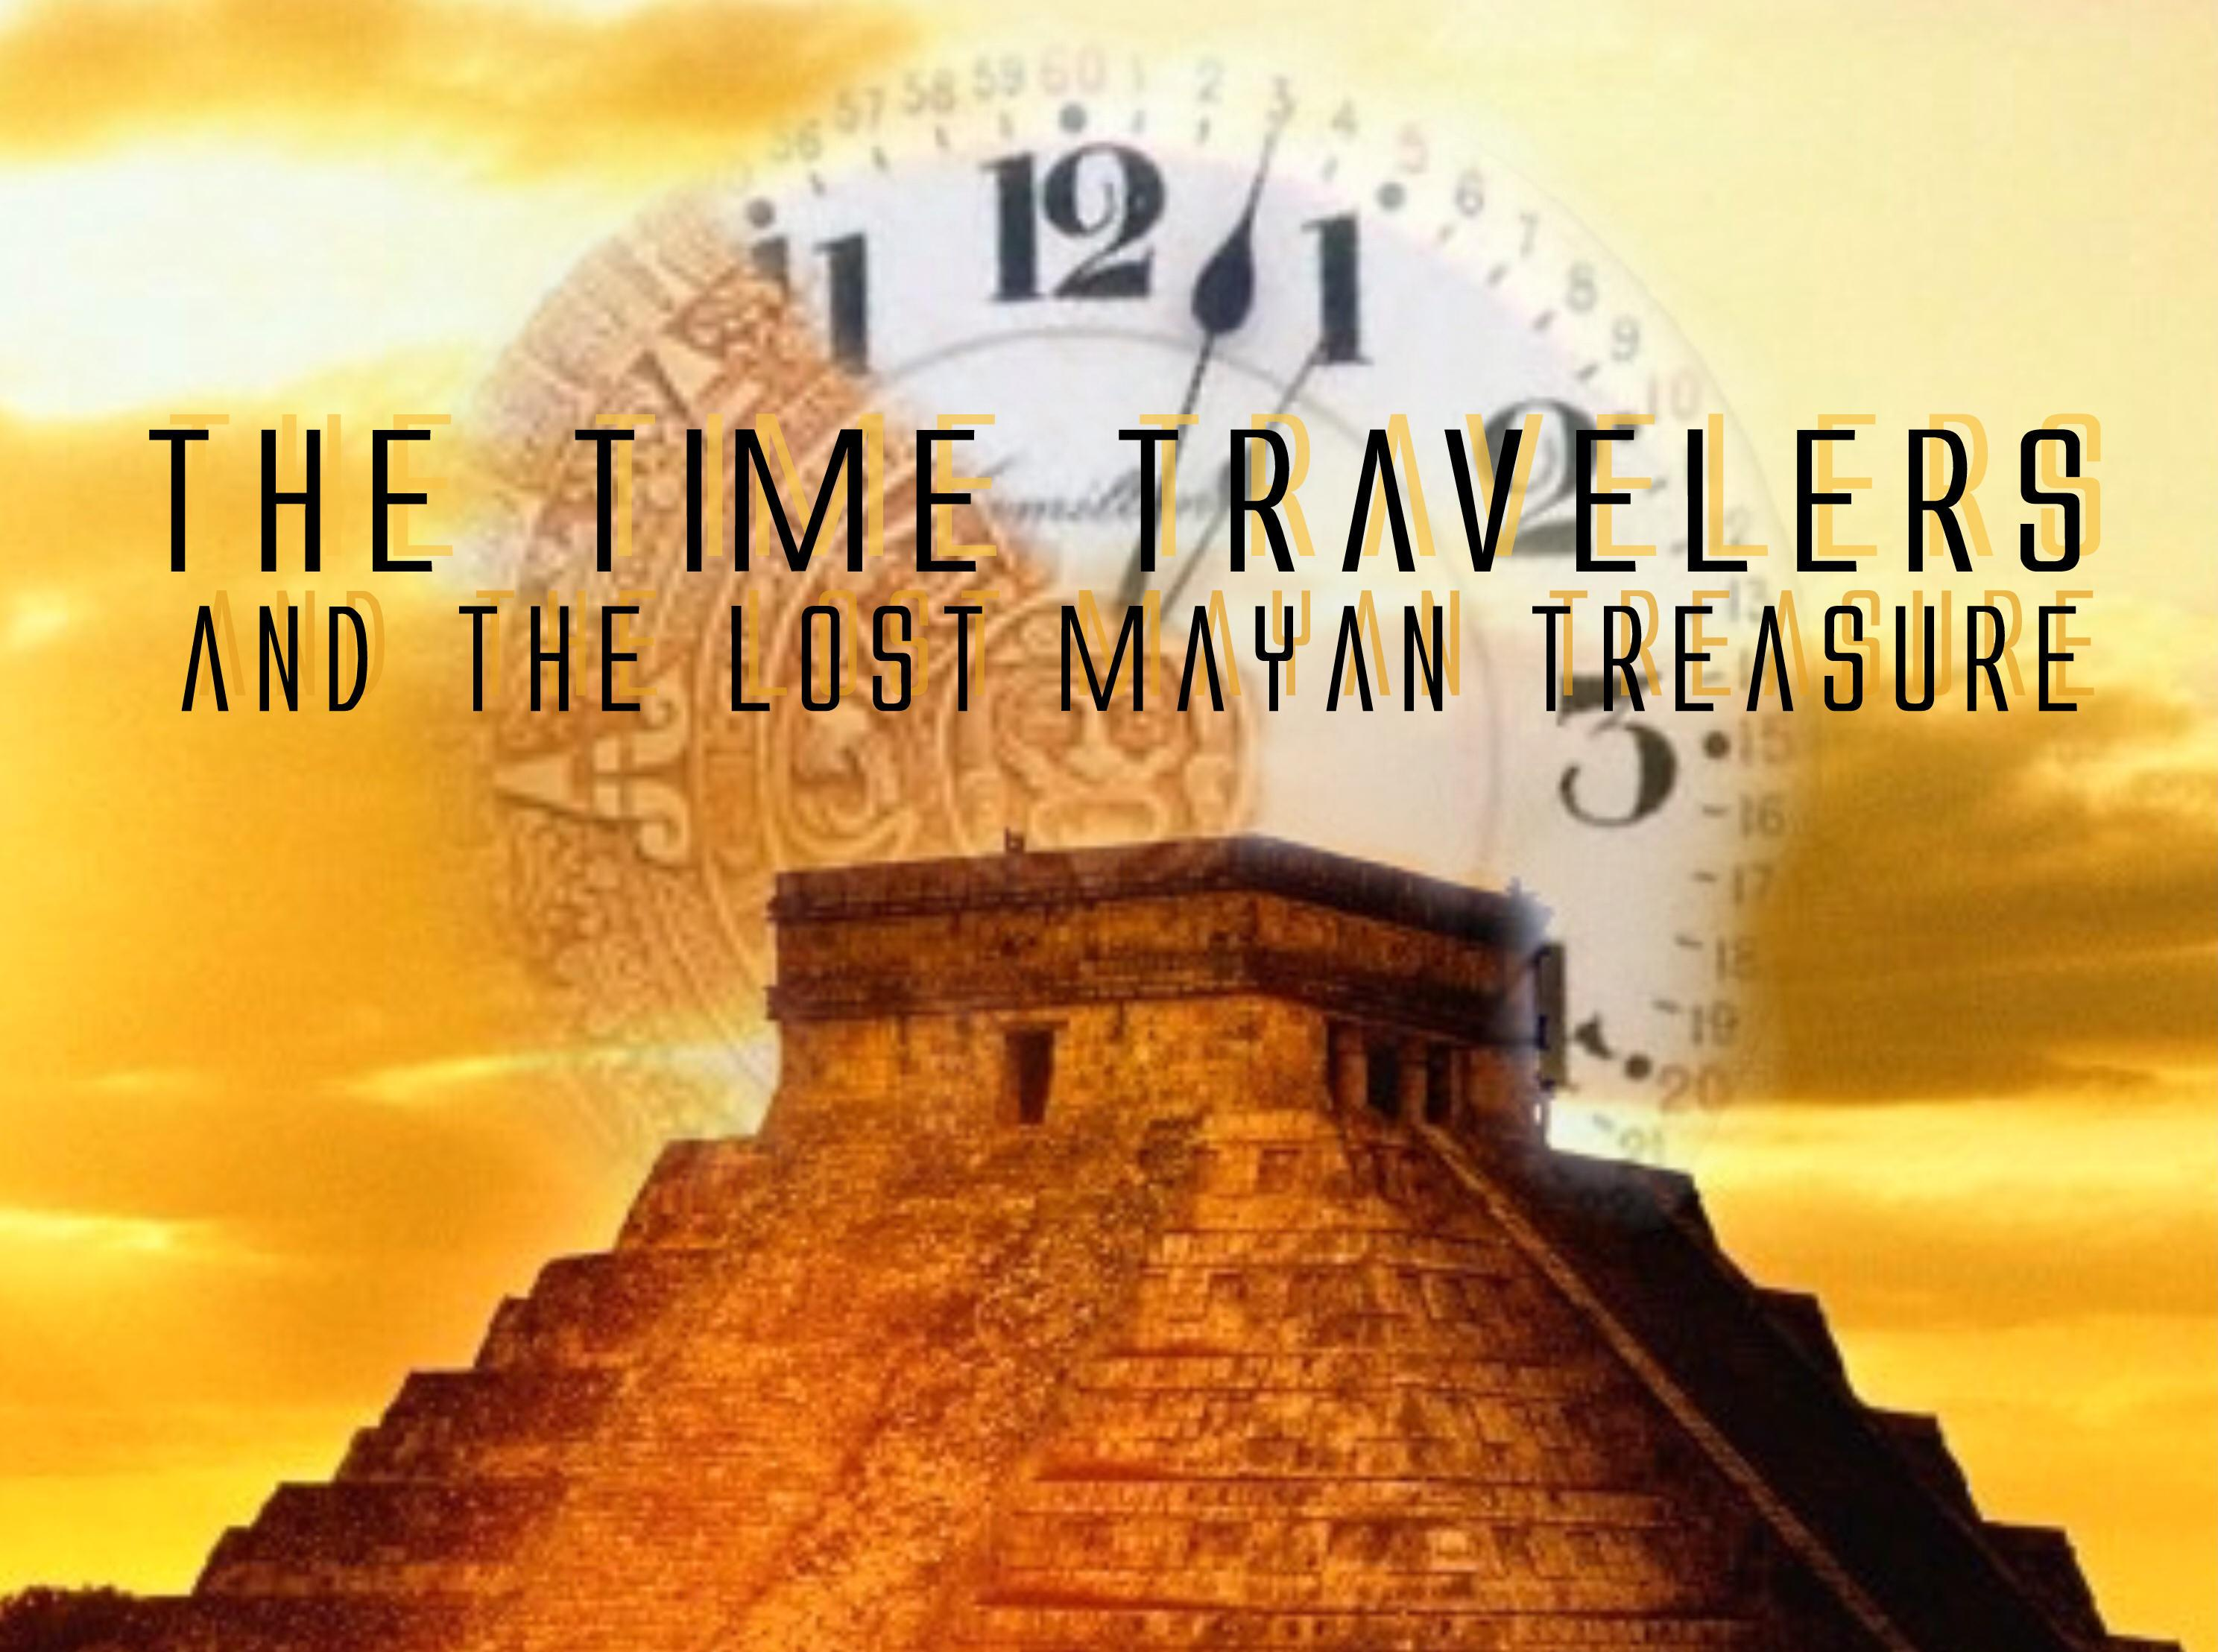 The Time Travelers Trilogy